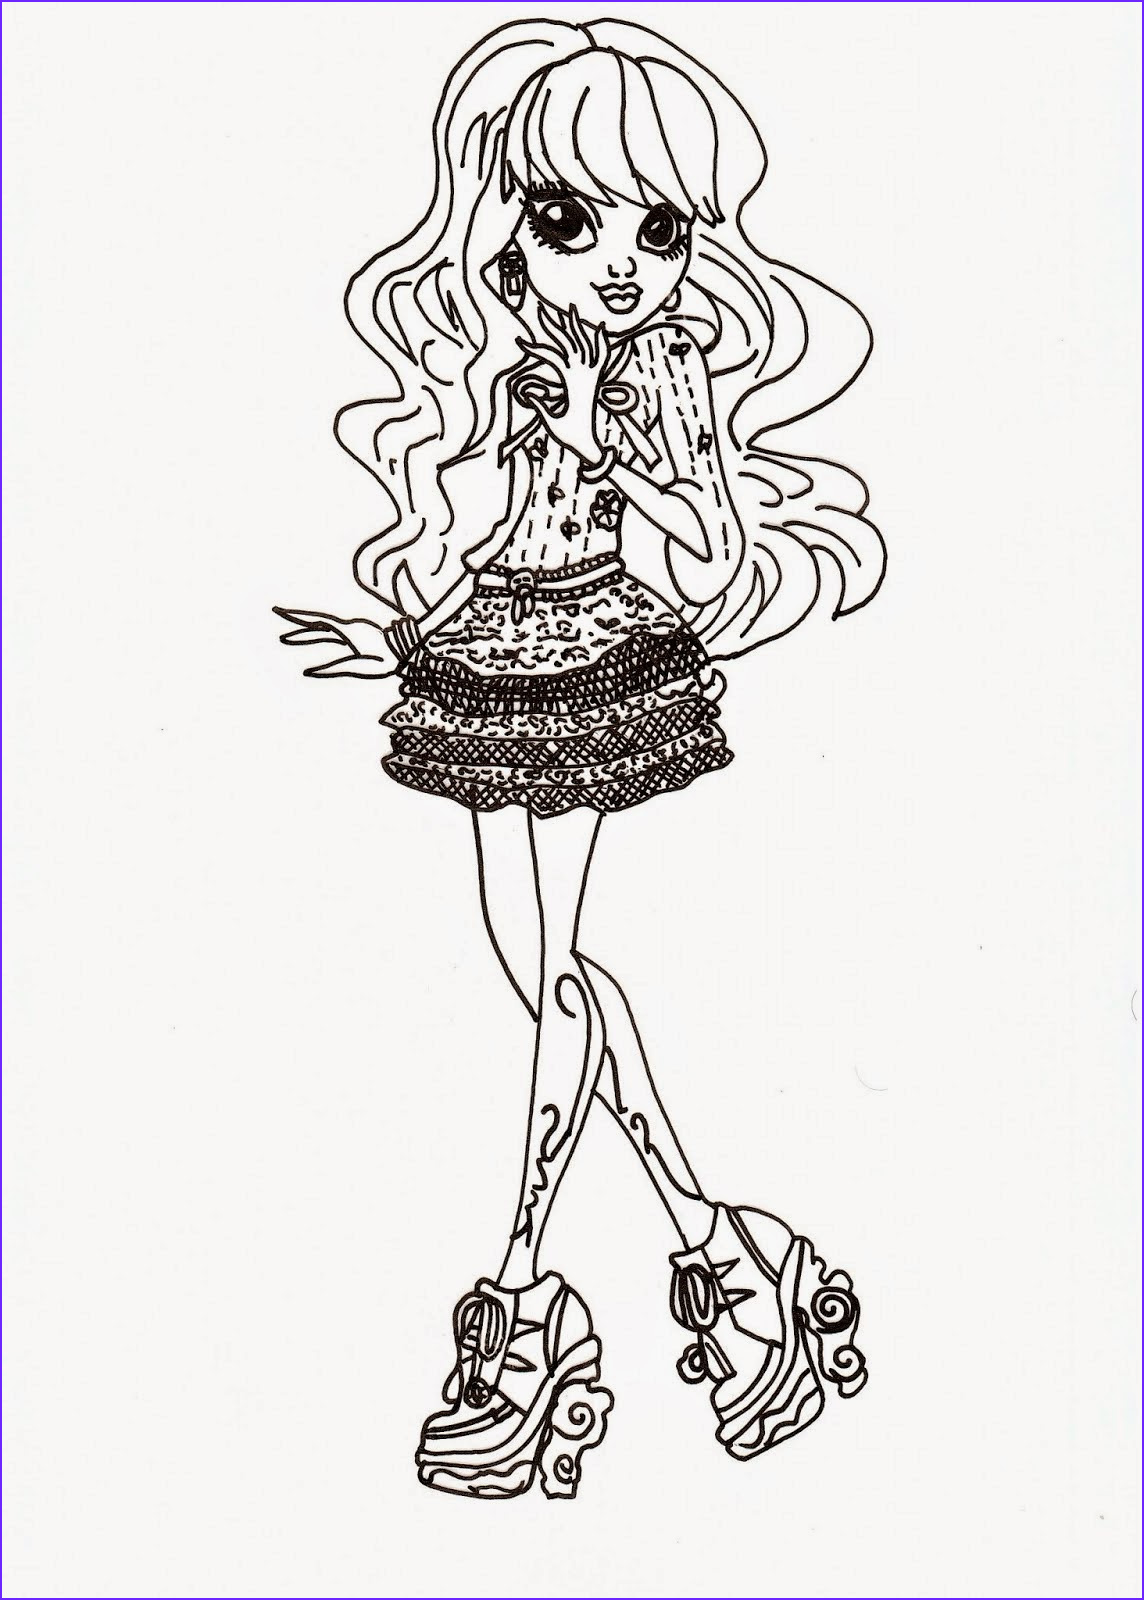 Monster High Coloring Pages Pdf Beautiful Photos Coloring Pages Monster High Coloring Pages Free And Printable